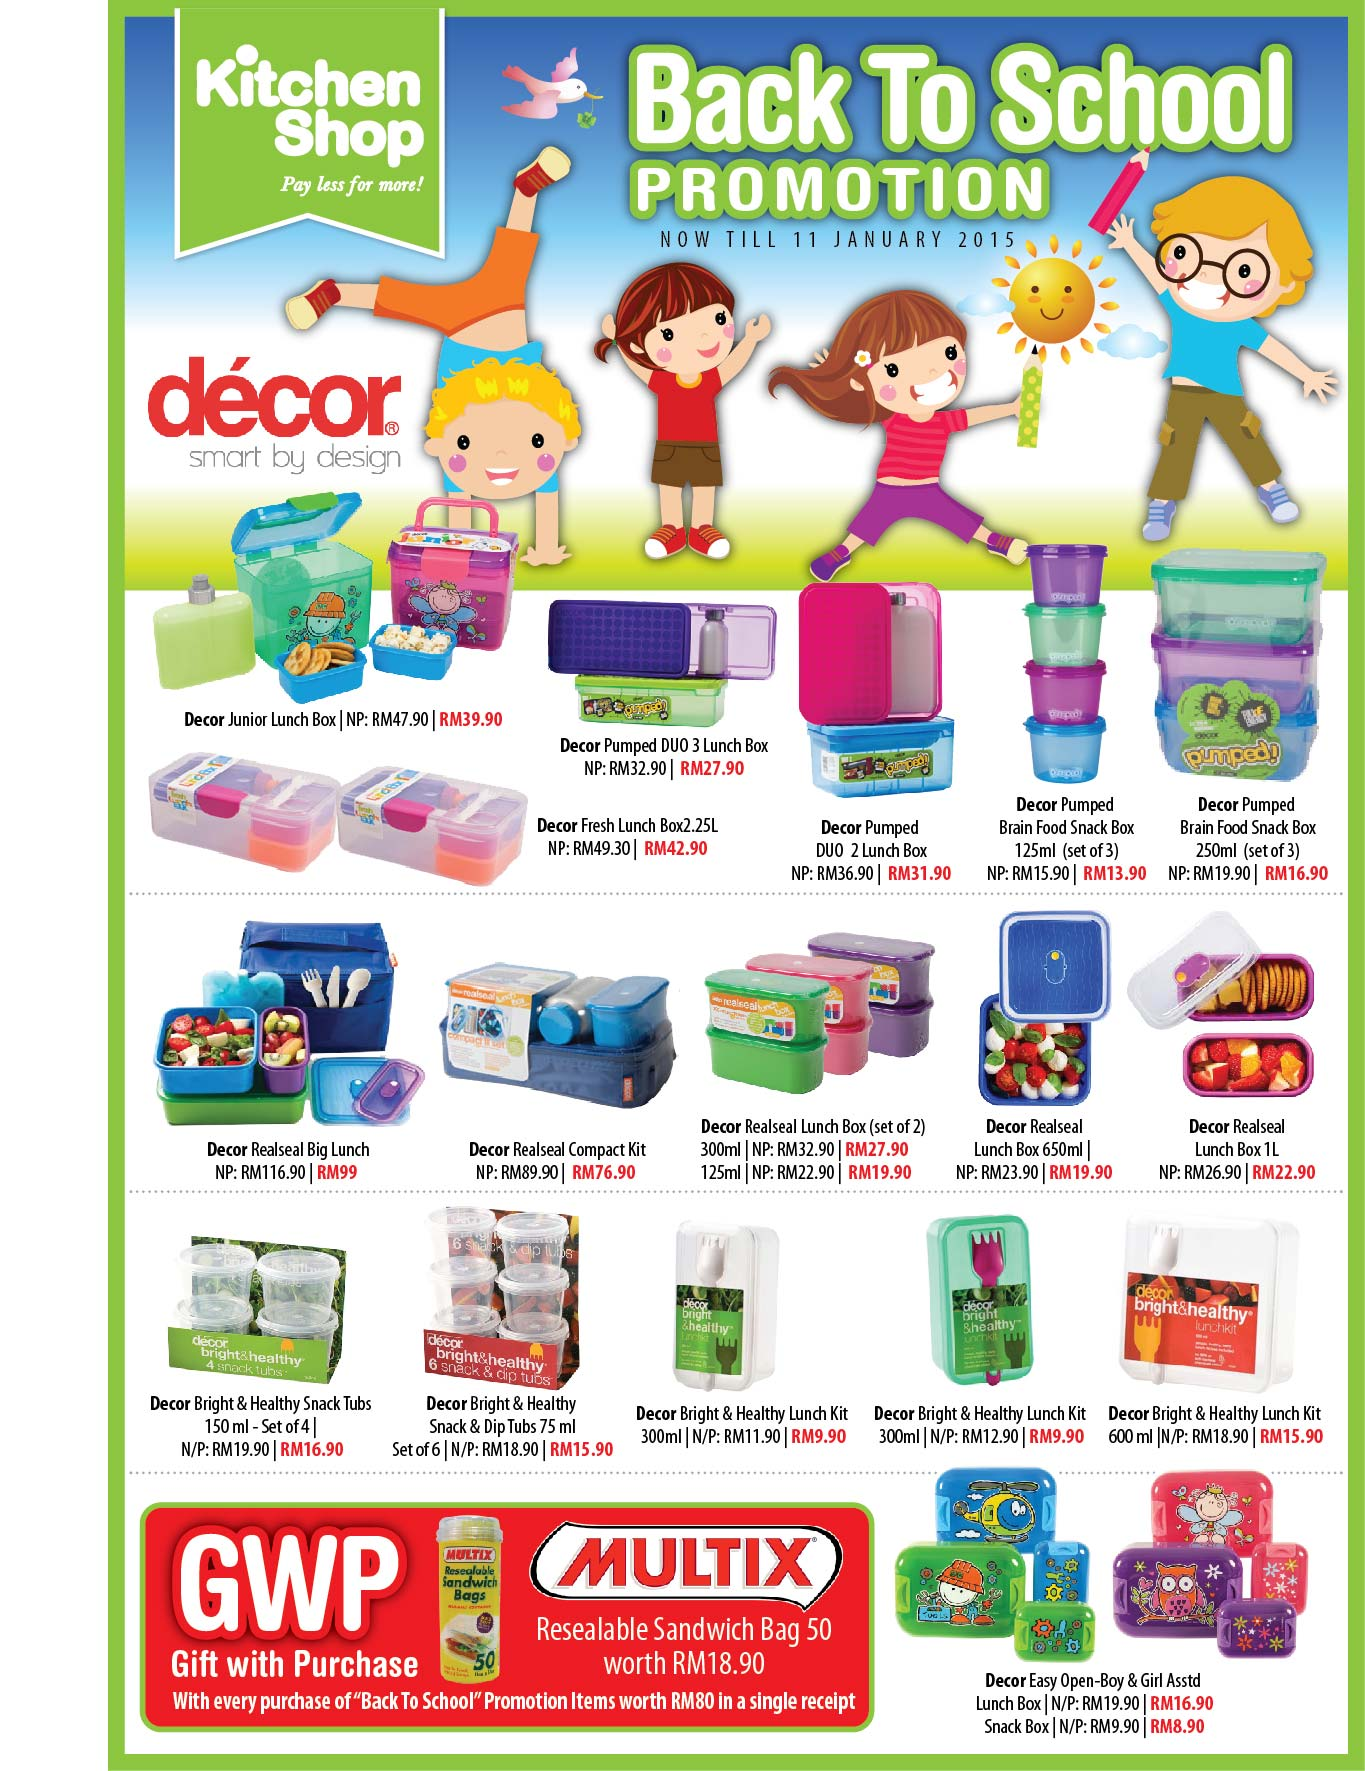 Kitchen Shop Back To School Promotion Now Till 11